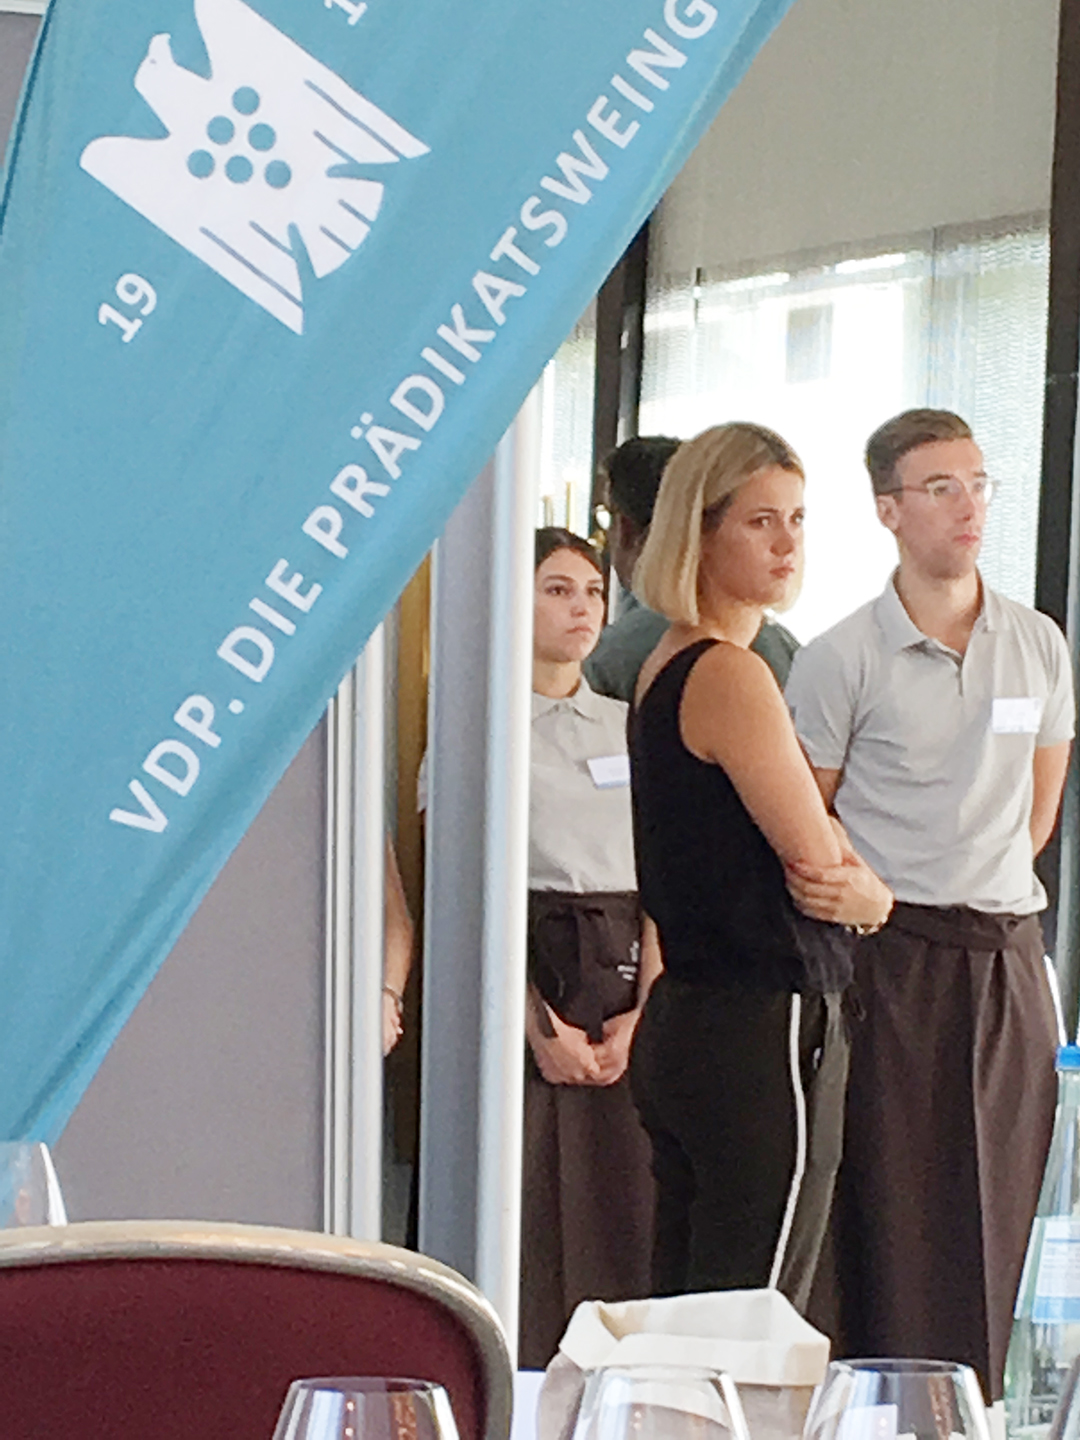 Good-looking young serving staff seen in a doorway behind a light blue banner reading 'VDP. DIE PRÄDIKATSWEING…'